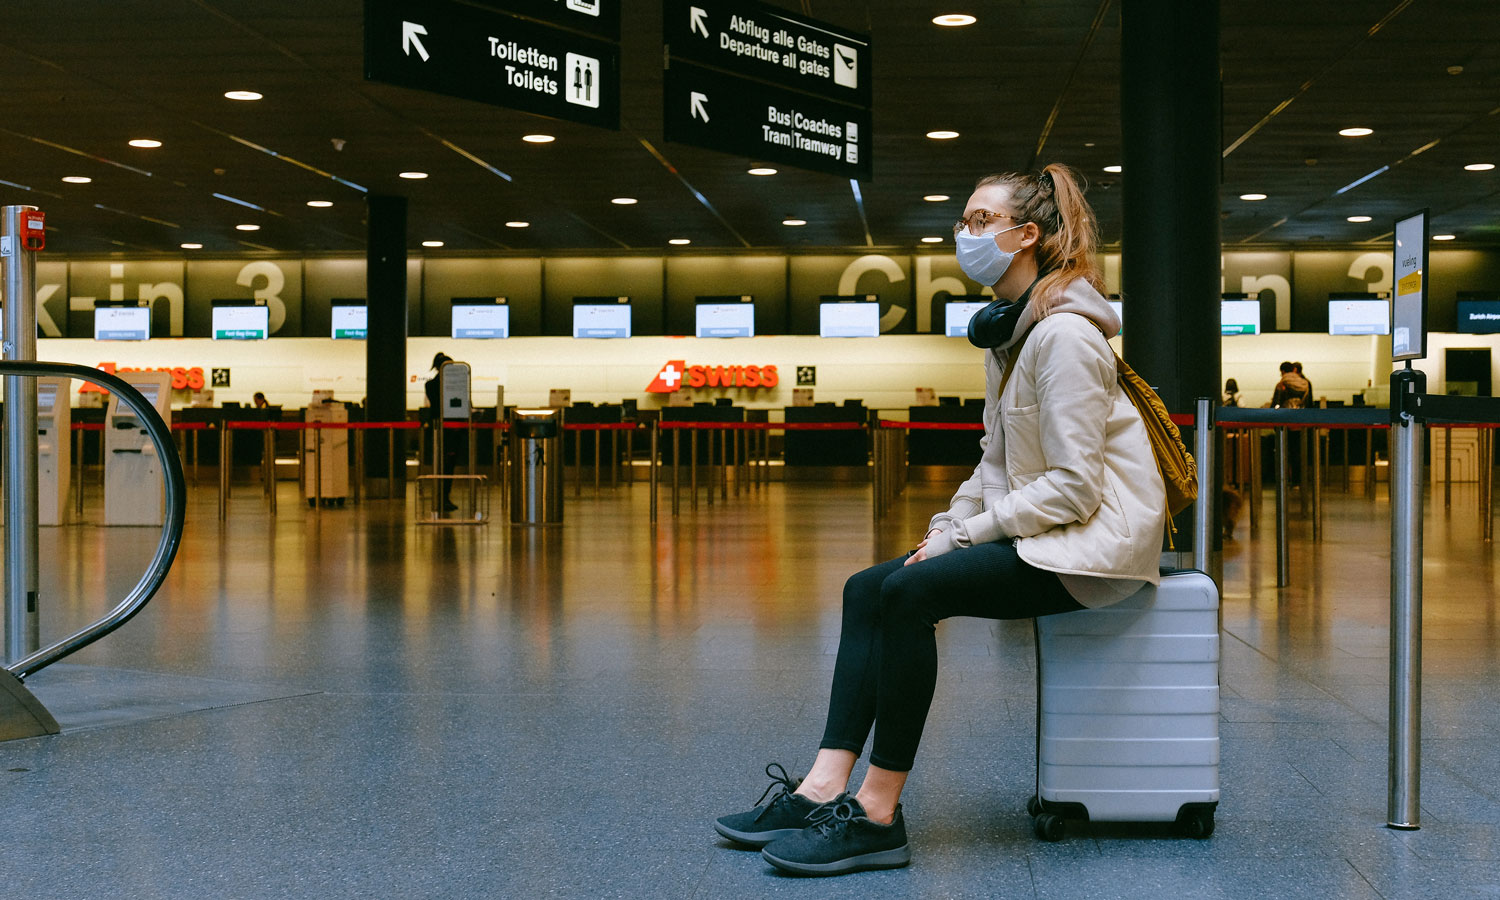 A woman wearing a mask, while sitting on a suitcase waiting for her flight gate to be announced.